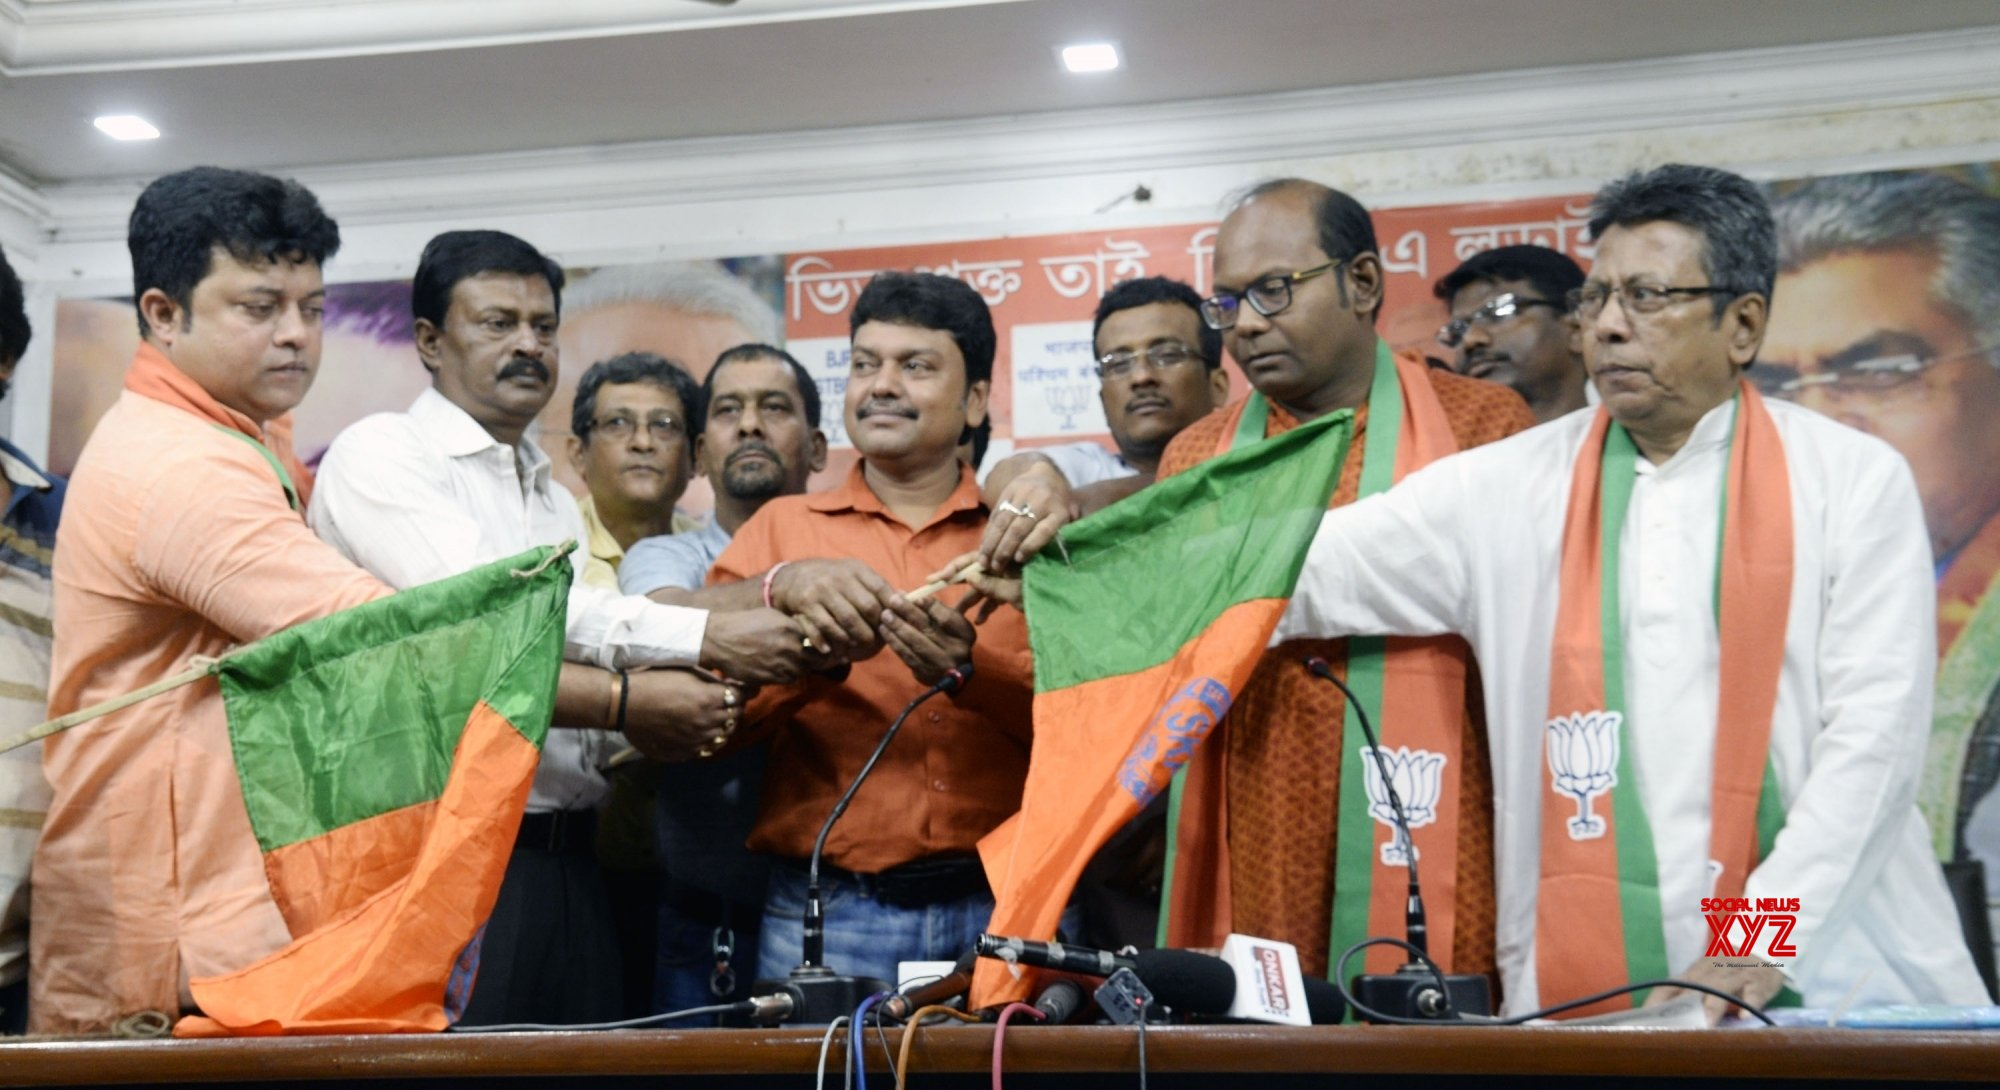 Kolkata: West Bengal government employees join BJP #Gallery - Social